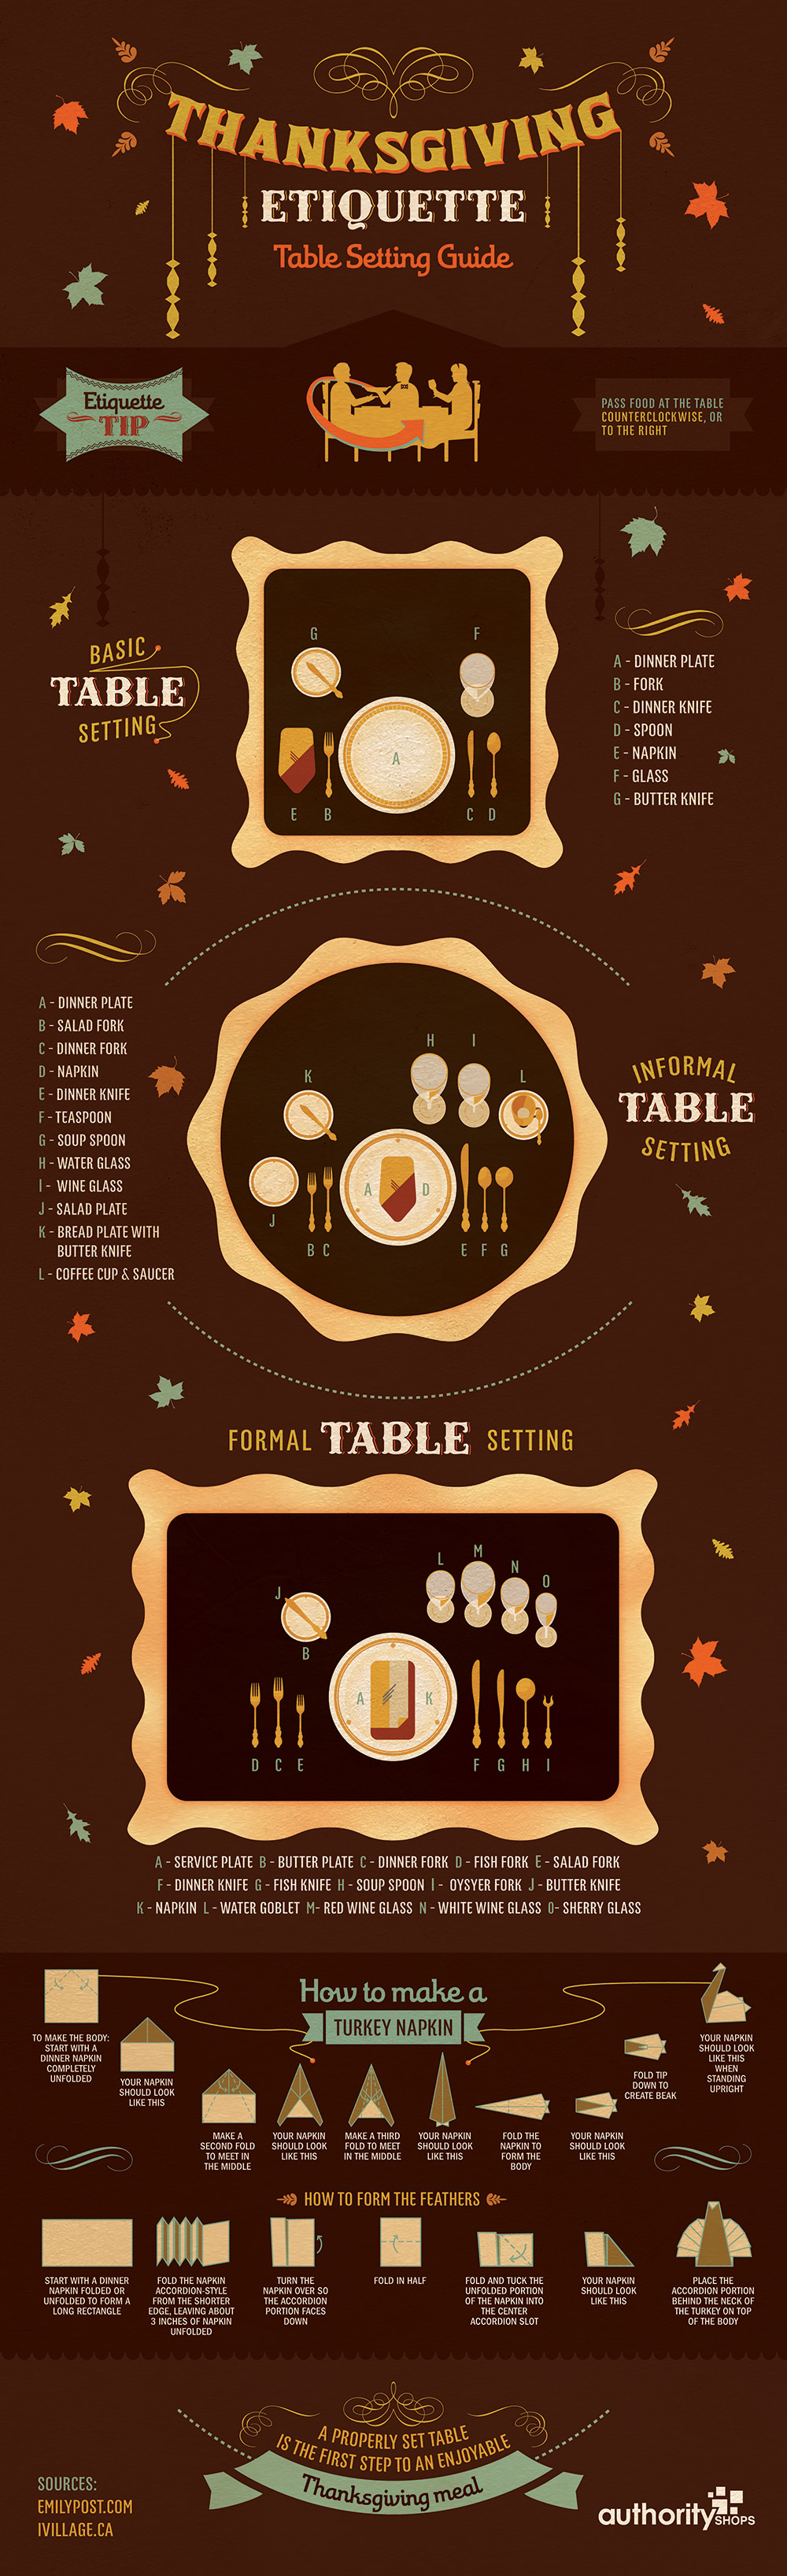 Thanksgiving Table Etiquette-Infographic